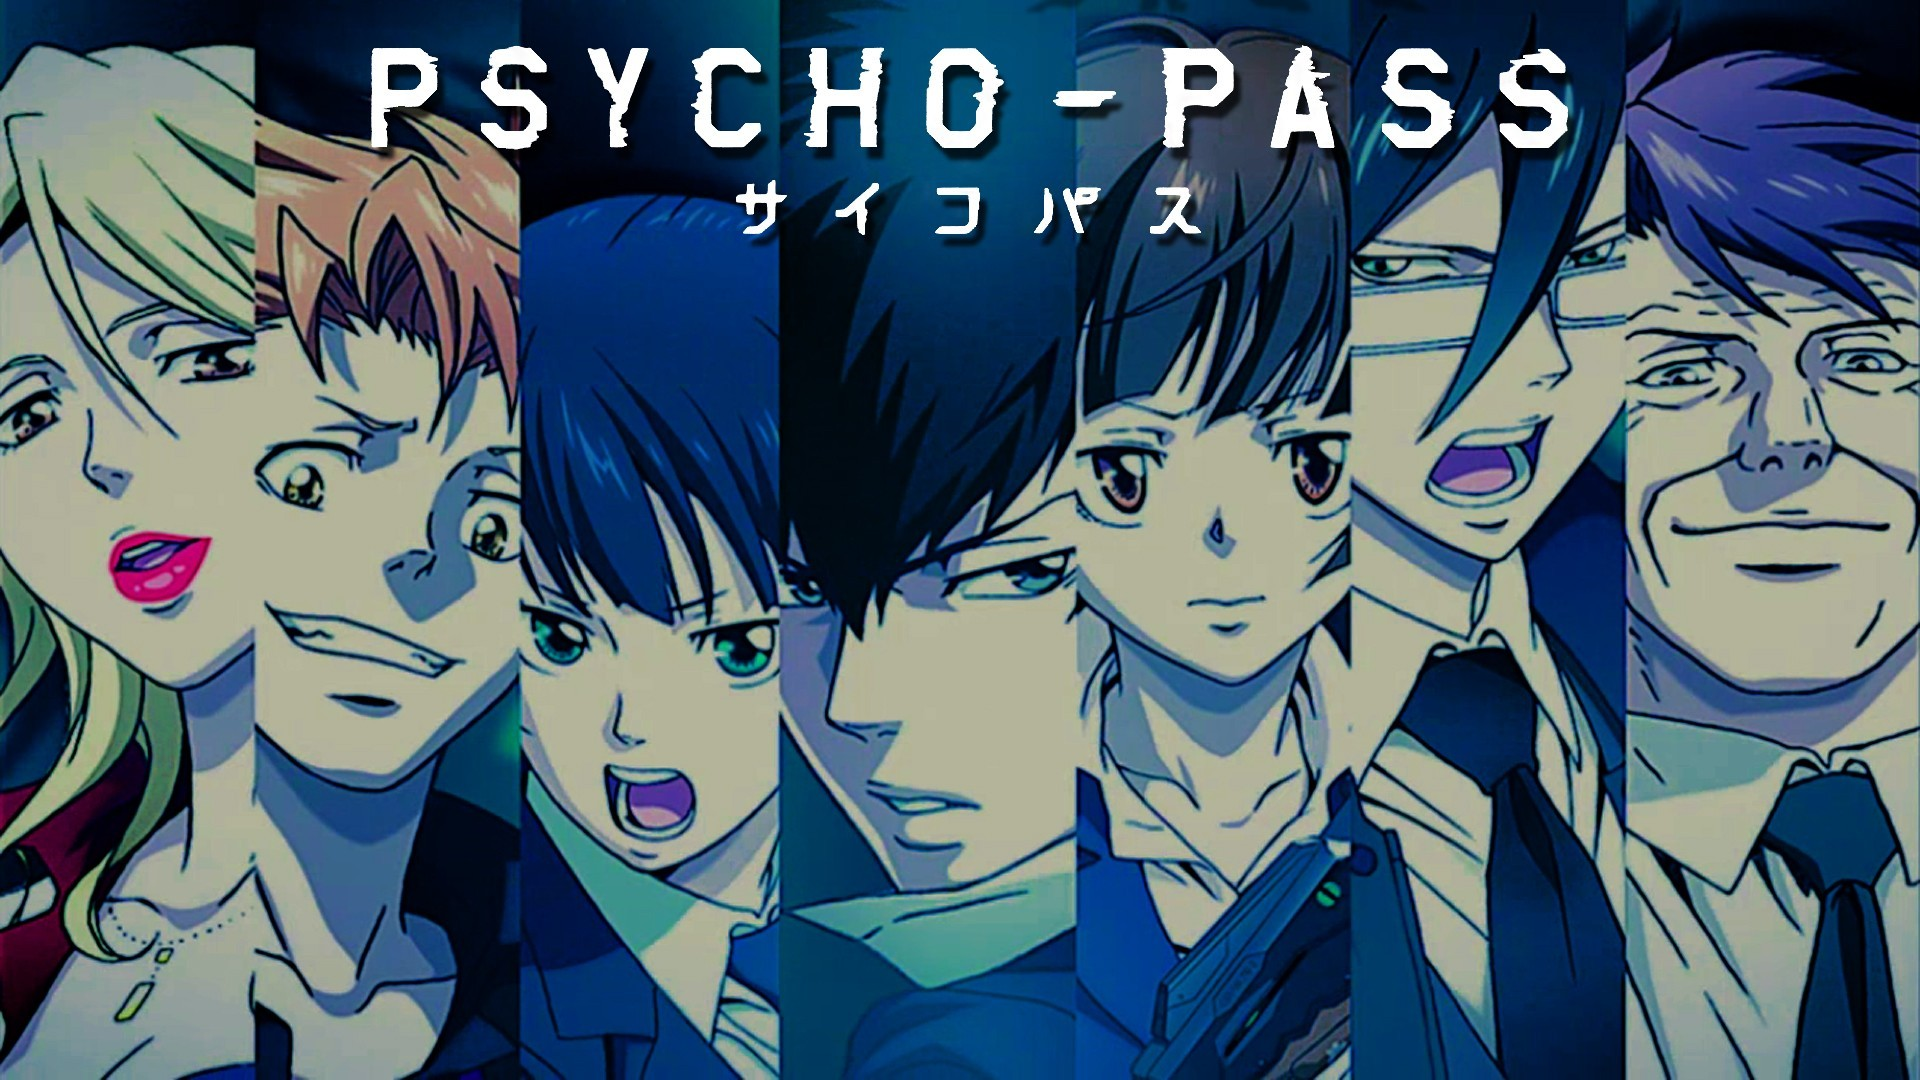 Psycho Pass Wallpaper Download Free Amazing High Resolution